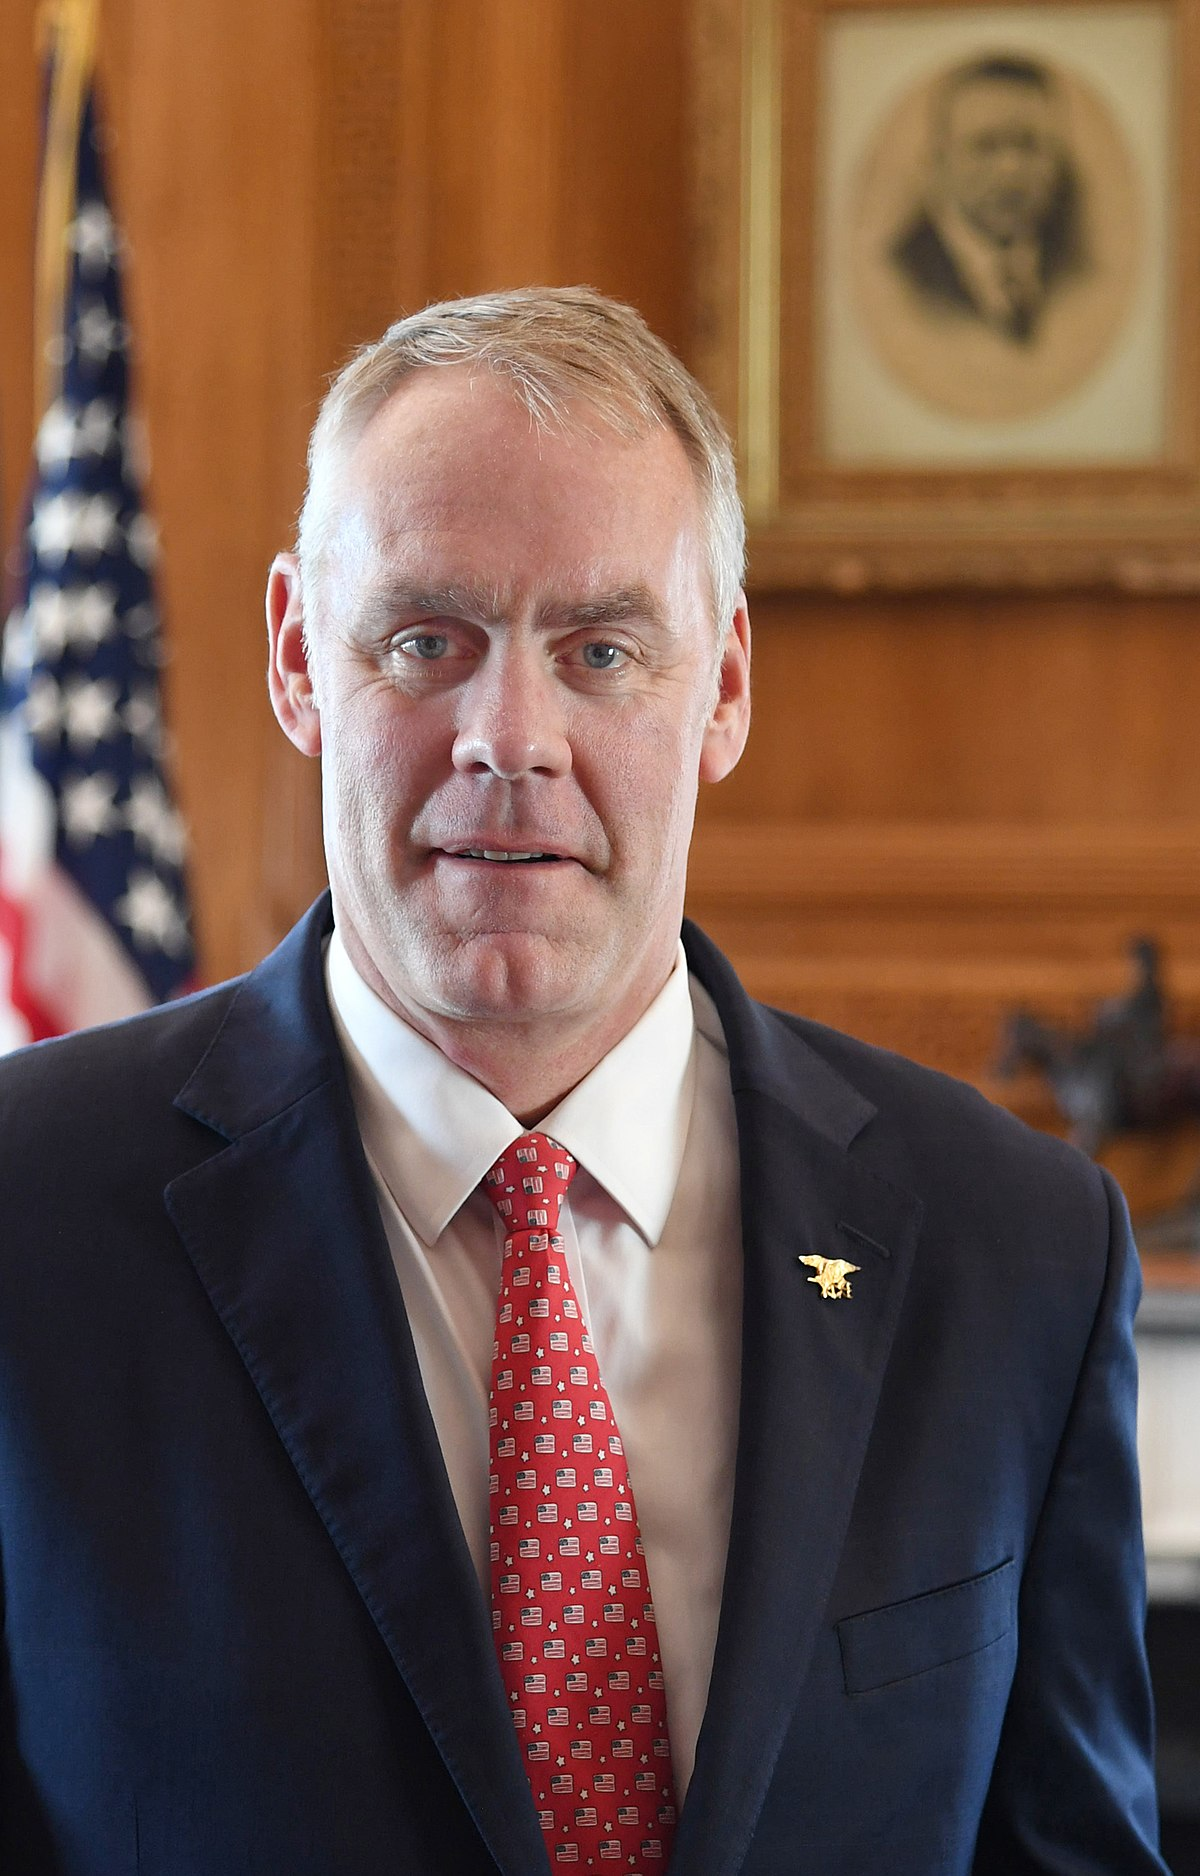 Ryan Zinke Wikipedia